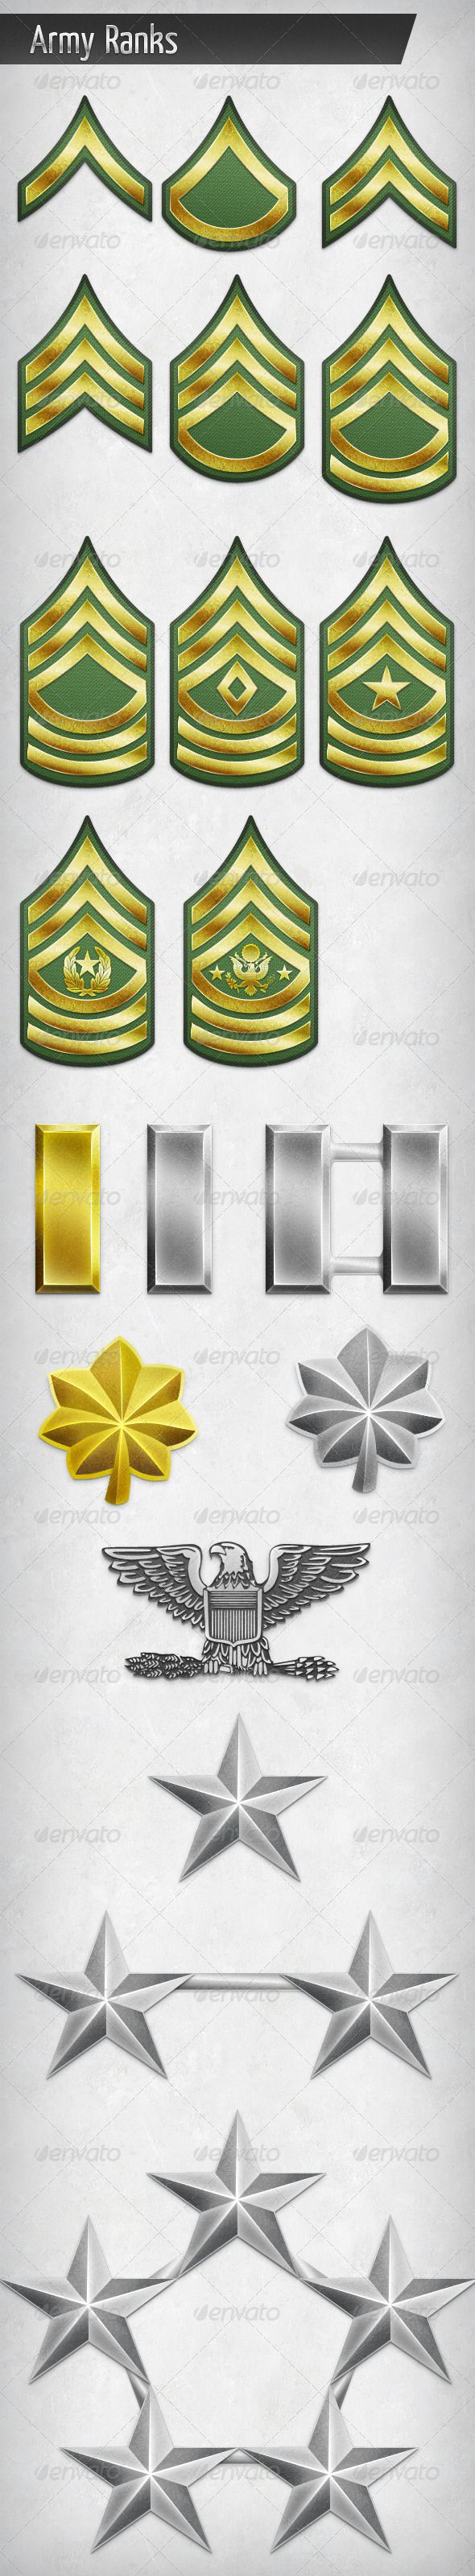 Army Rank Insignias  #GraphicRiver         20 ranks of the US army. Made with Photoshop using vector shapes and layer styles. All elements are editable. Ranks: Private, Private 1st Class, Corporal, Sergeant, Staff Sergeant, Sergeant 1st Class, Master Sergeant, 1st Sergeant, Sergeant Major, Command Sergeant Major, Sergeant Major of the Army, 2nd Lieutenant, 1st Lieutenant, Captain, Major, Lieutenant Colonel, Colonel, Brigadier General, Major General, General of the Army  	 You can see the…